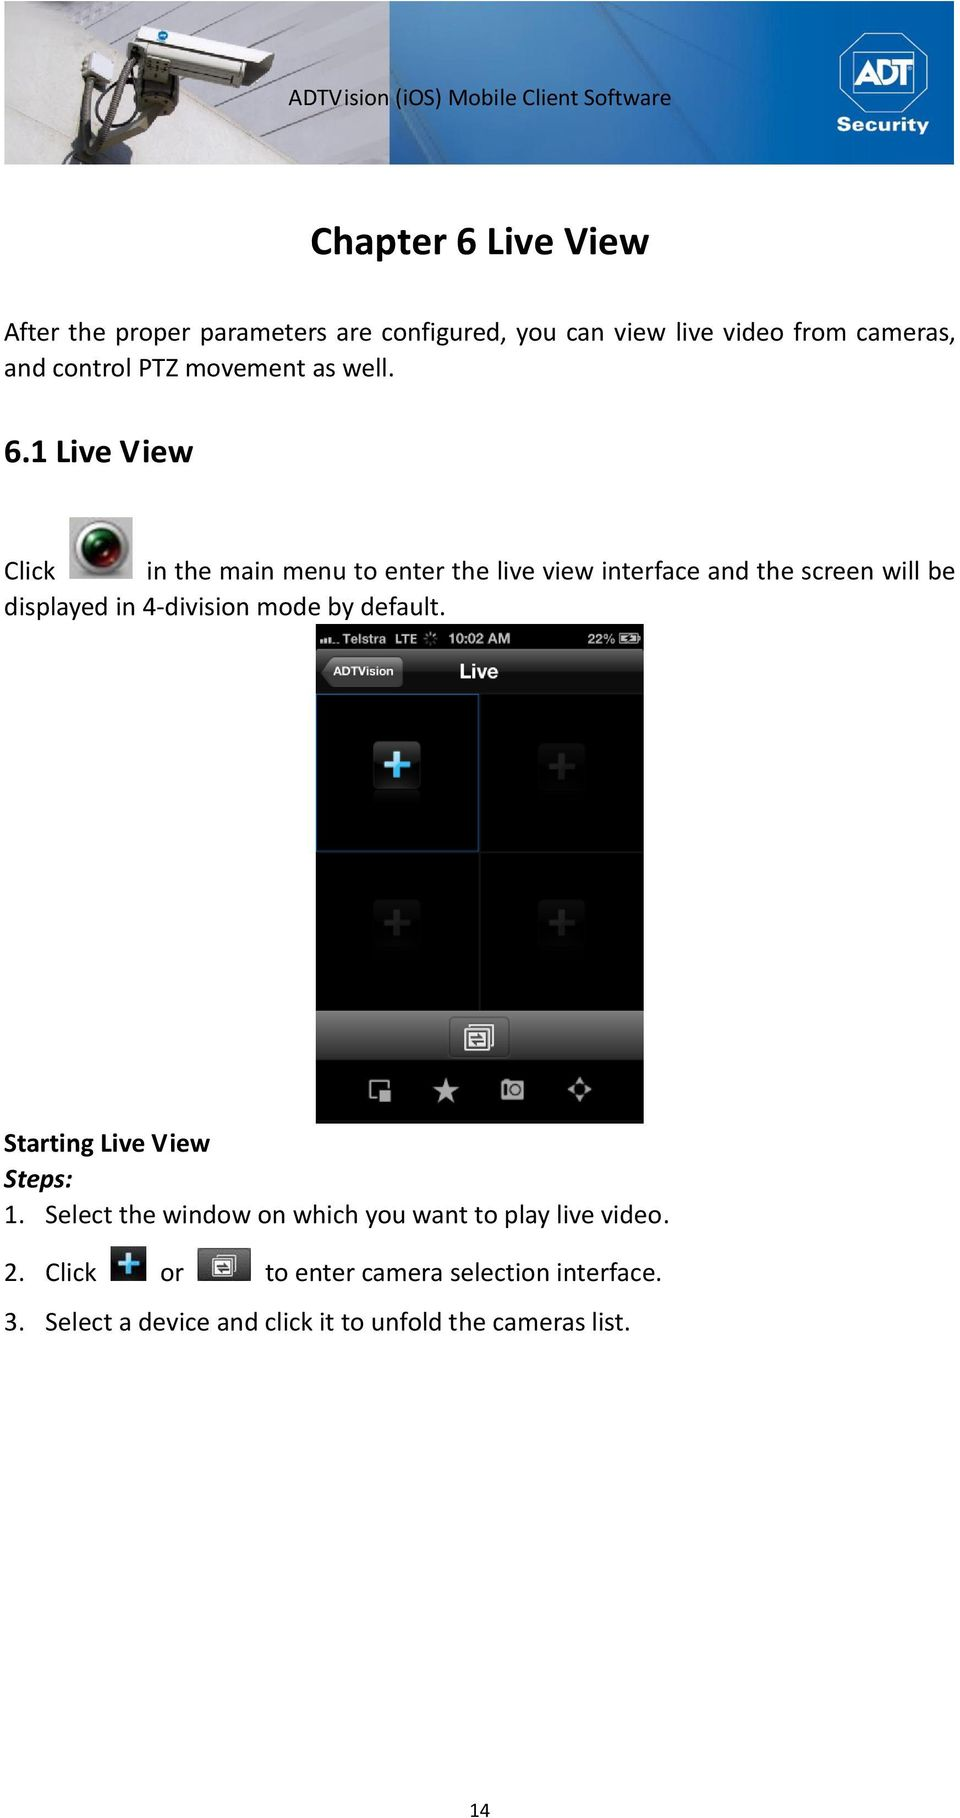 1 Live View Click in the main menu to enter the live view interface and the screen will be displayed in 4-division